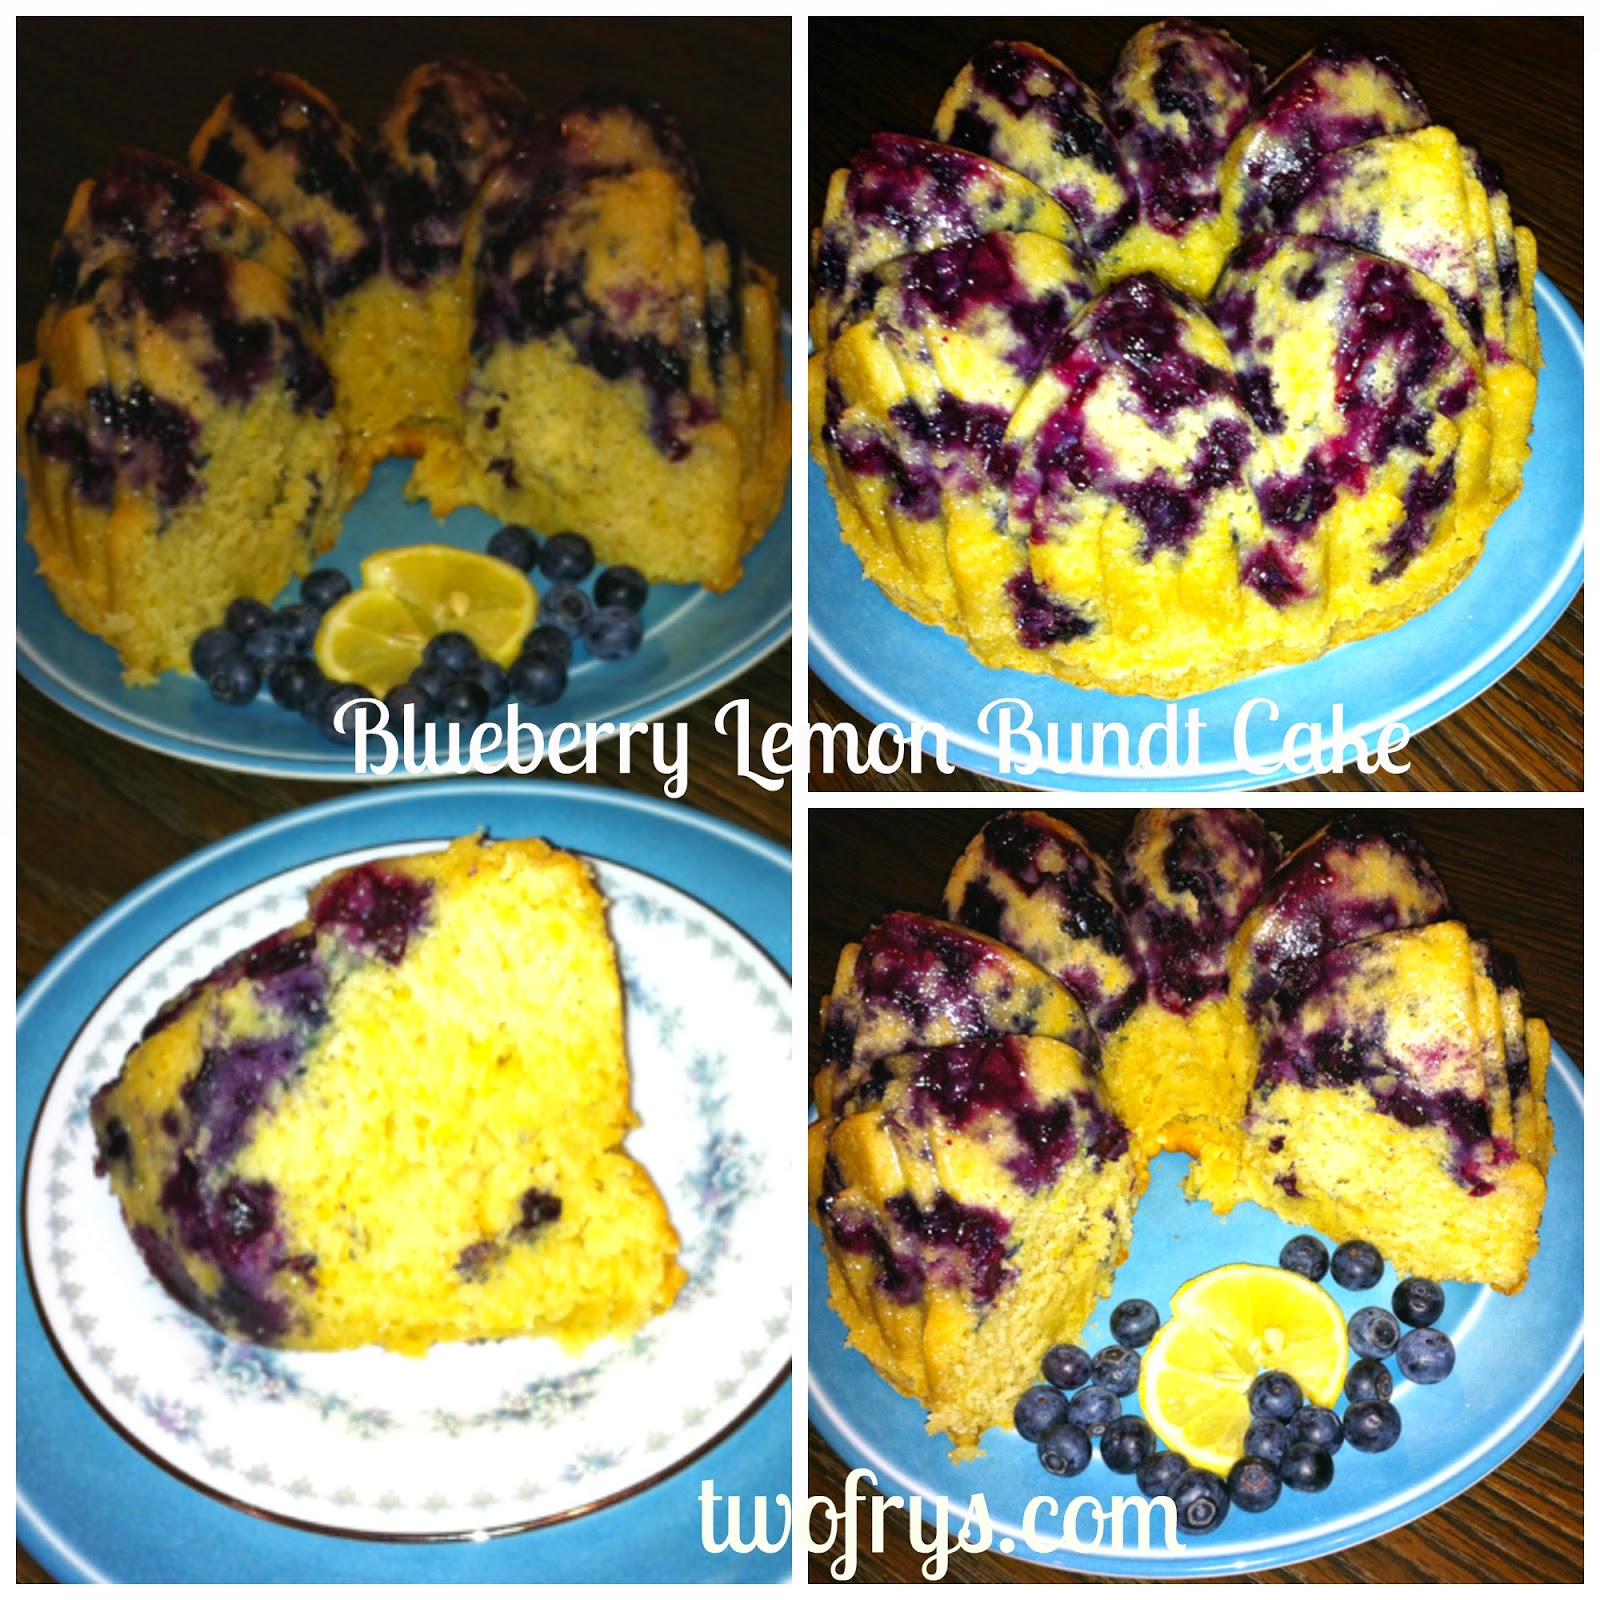 Two Frys: Blueberry Lemon Bundt Cake